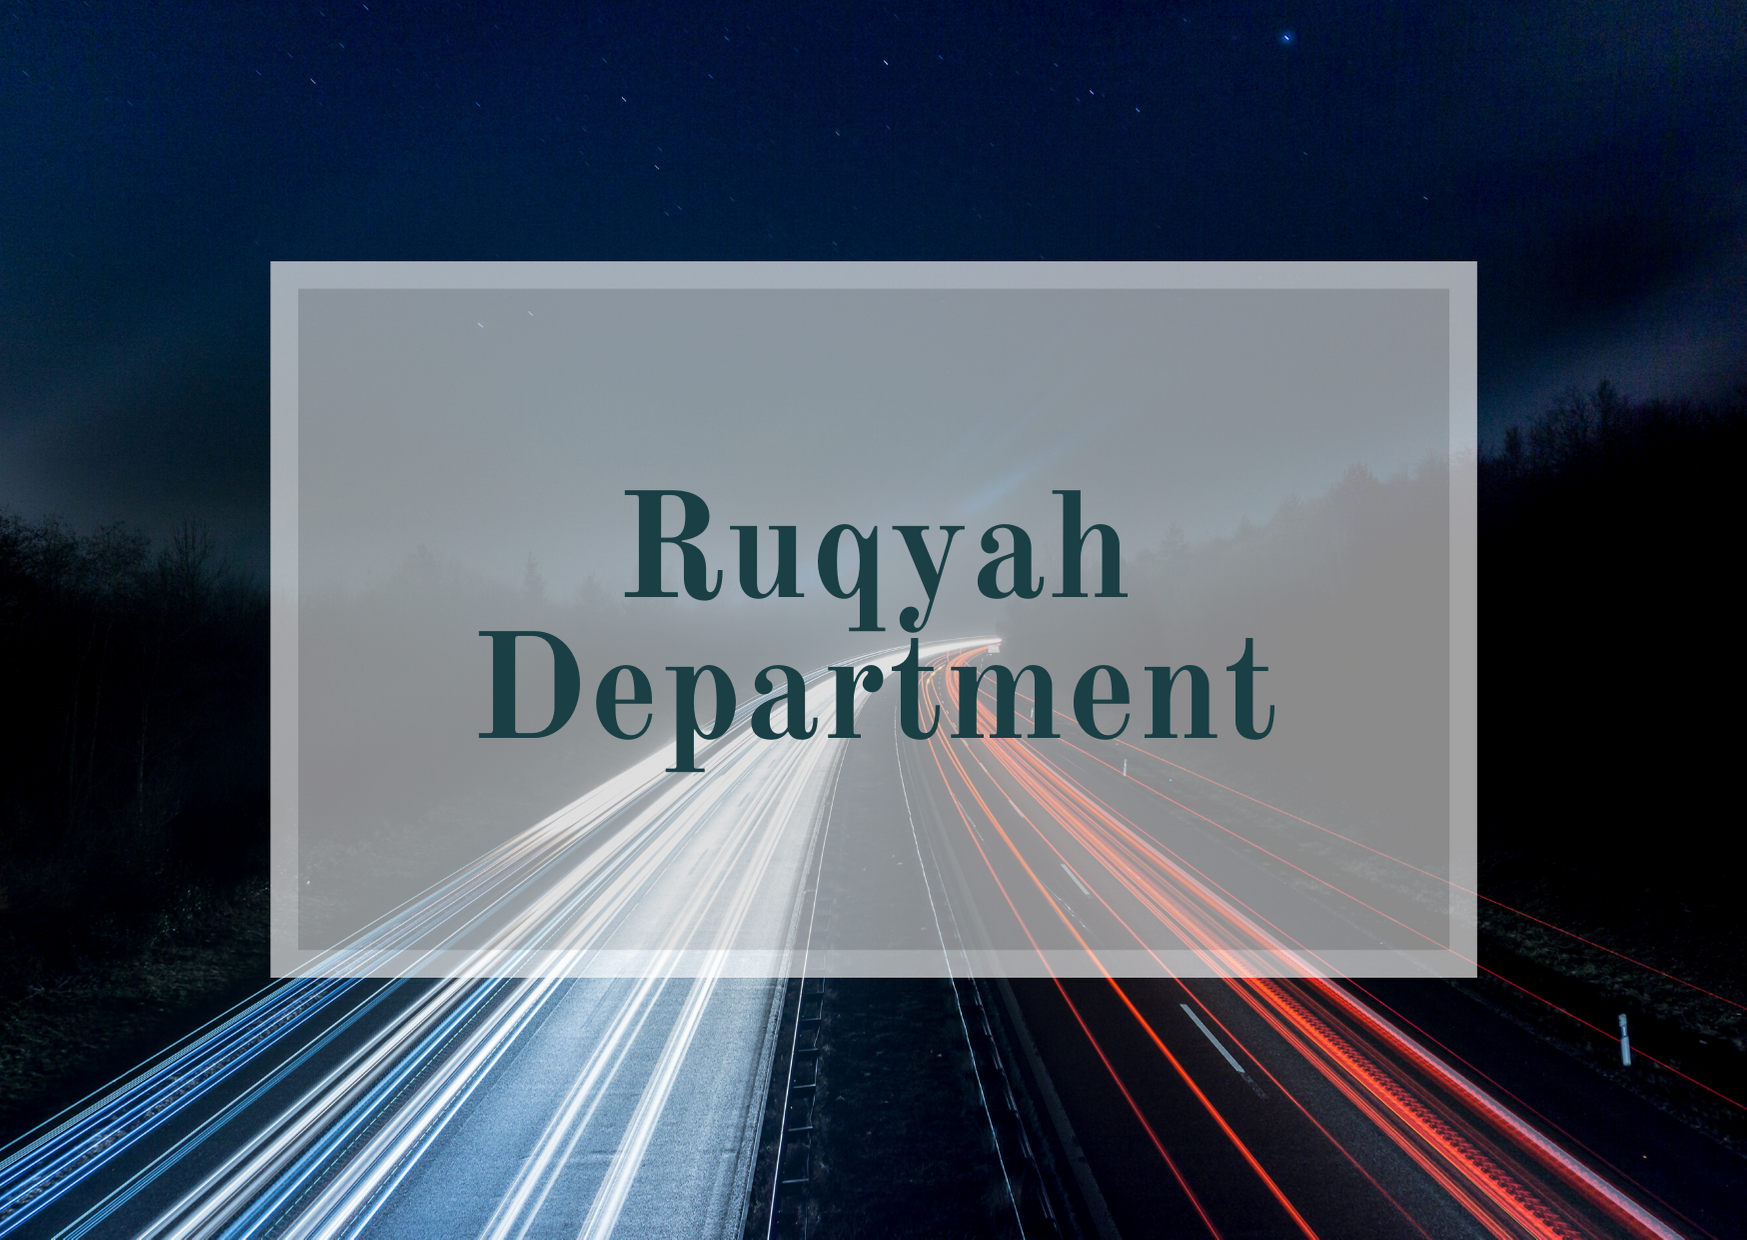 Ruqyah Department